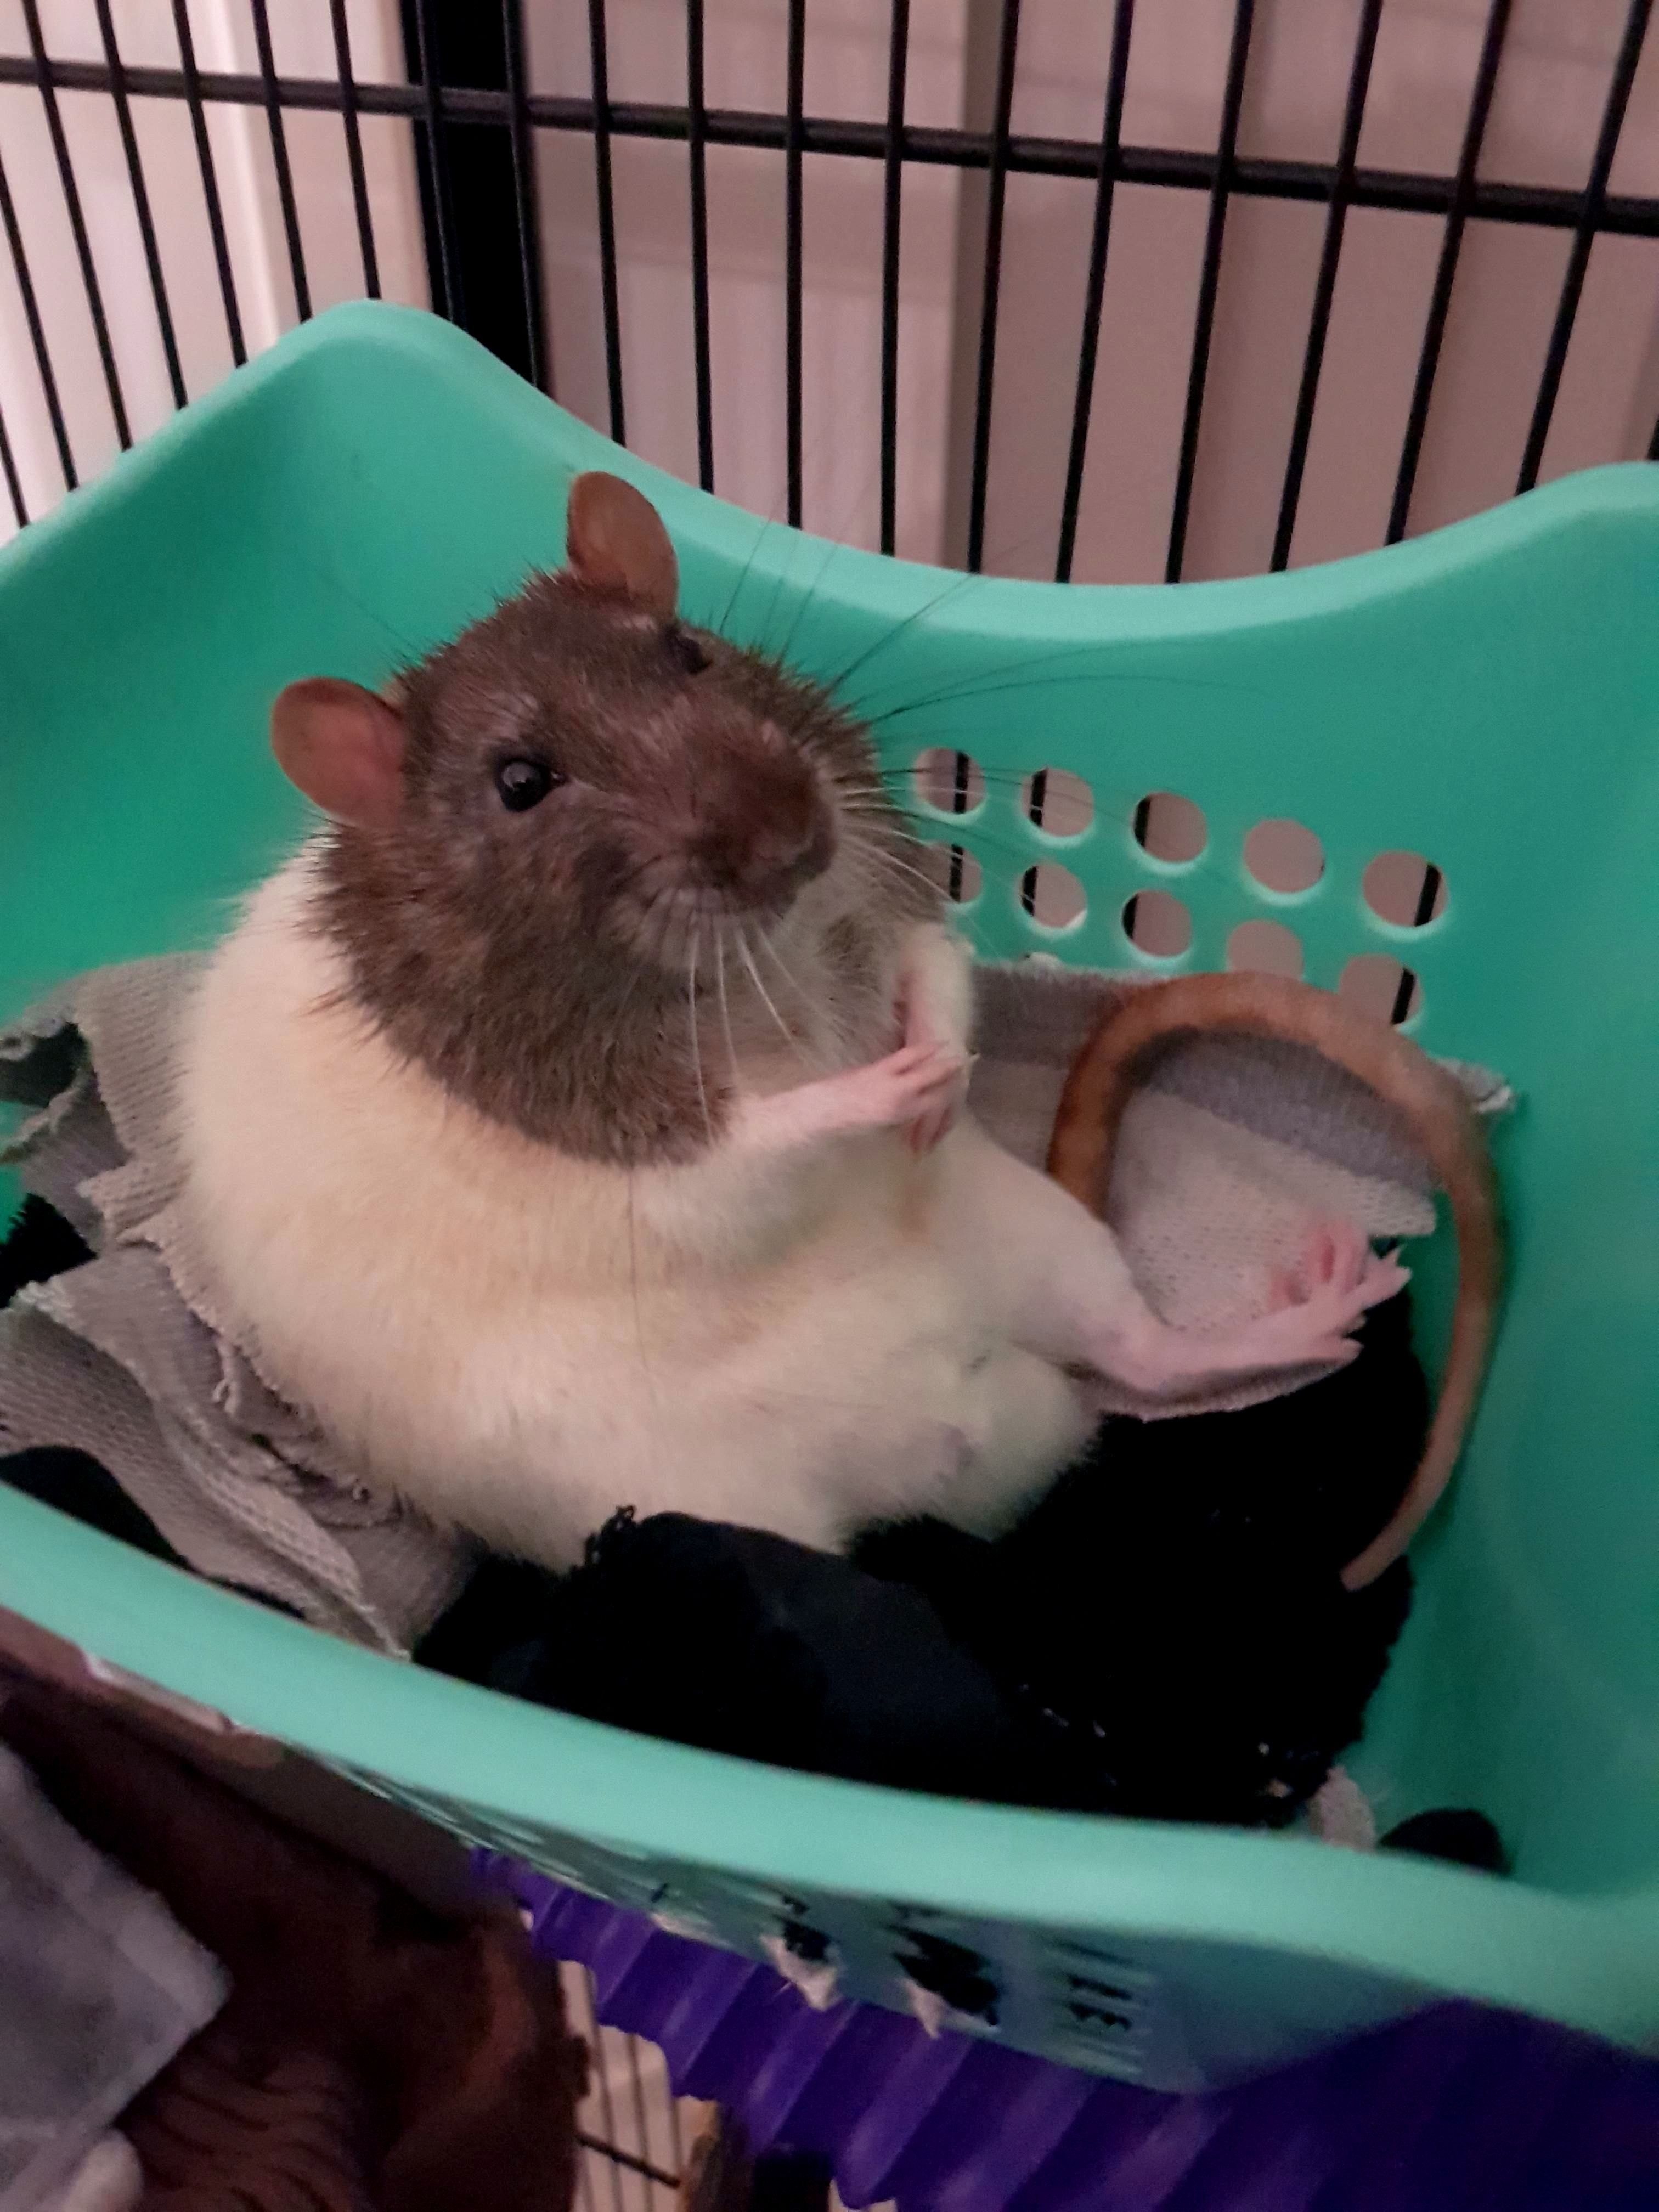 How Sweet Daily Cutest Posts Follow Me For More Posts Best Pictures Fo Rat Rats Designer And Crea Pet Rodents Cute Rats Pet Rats